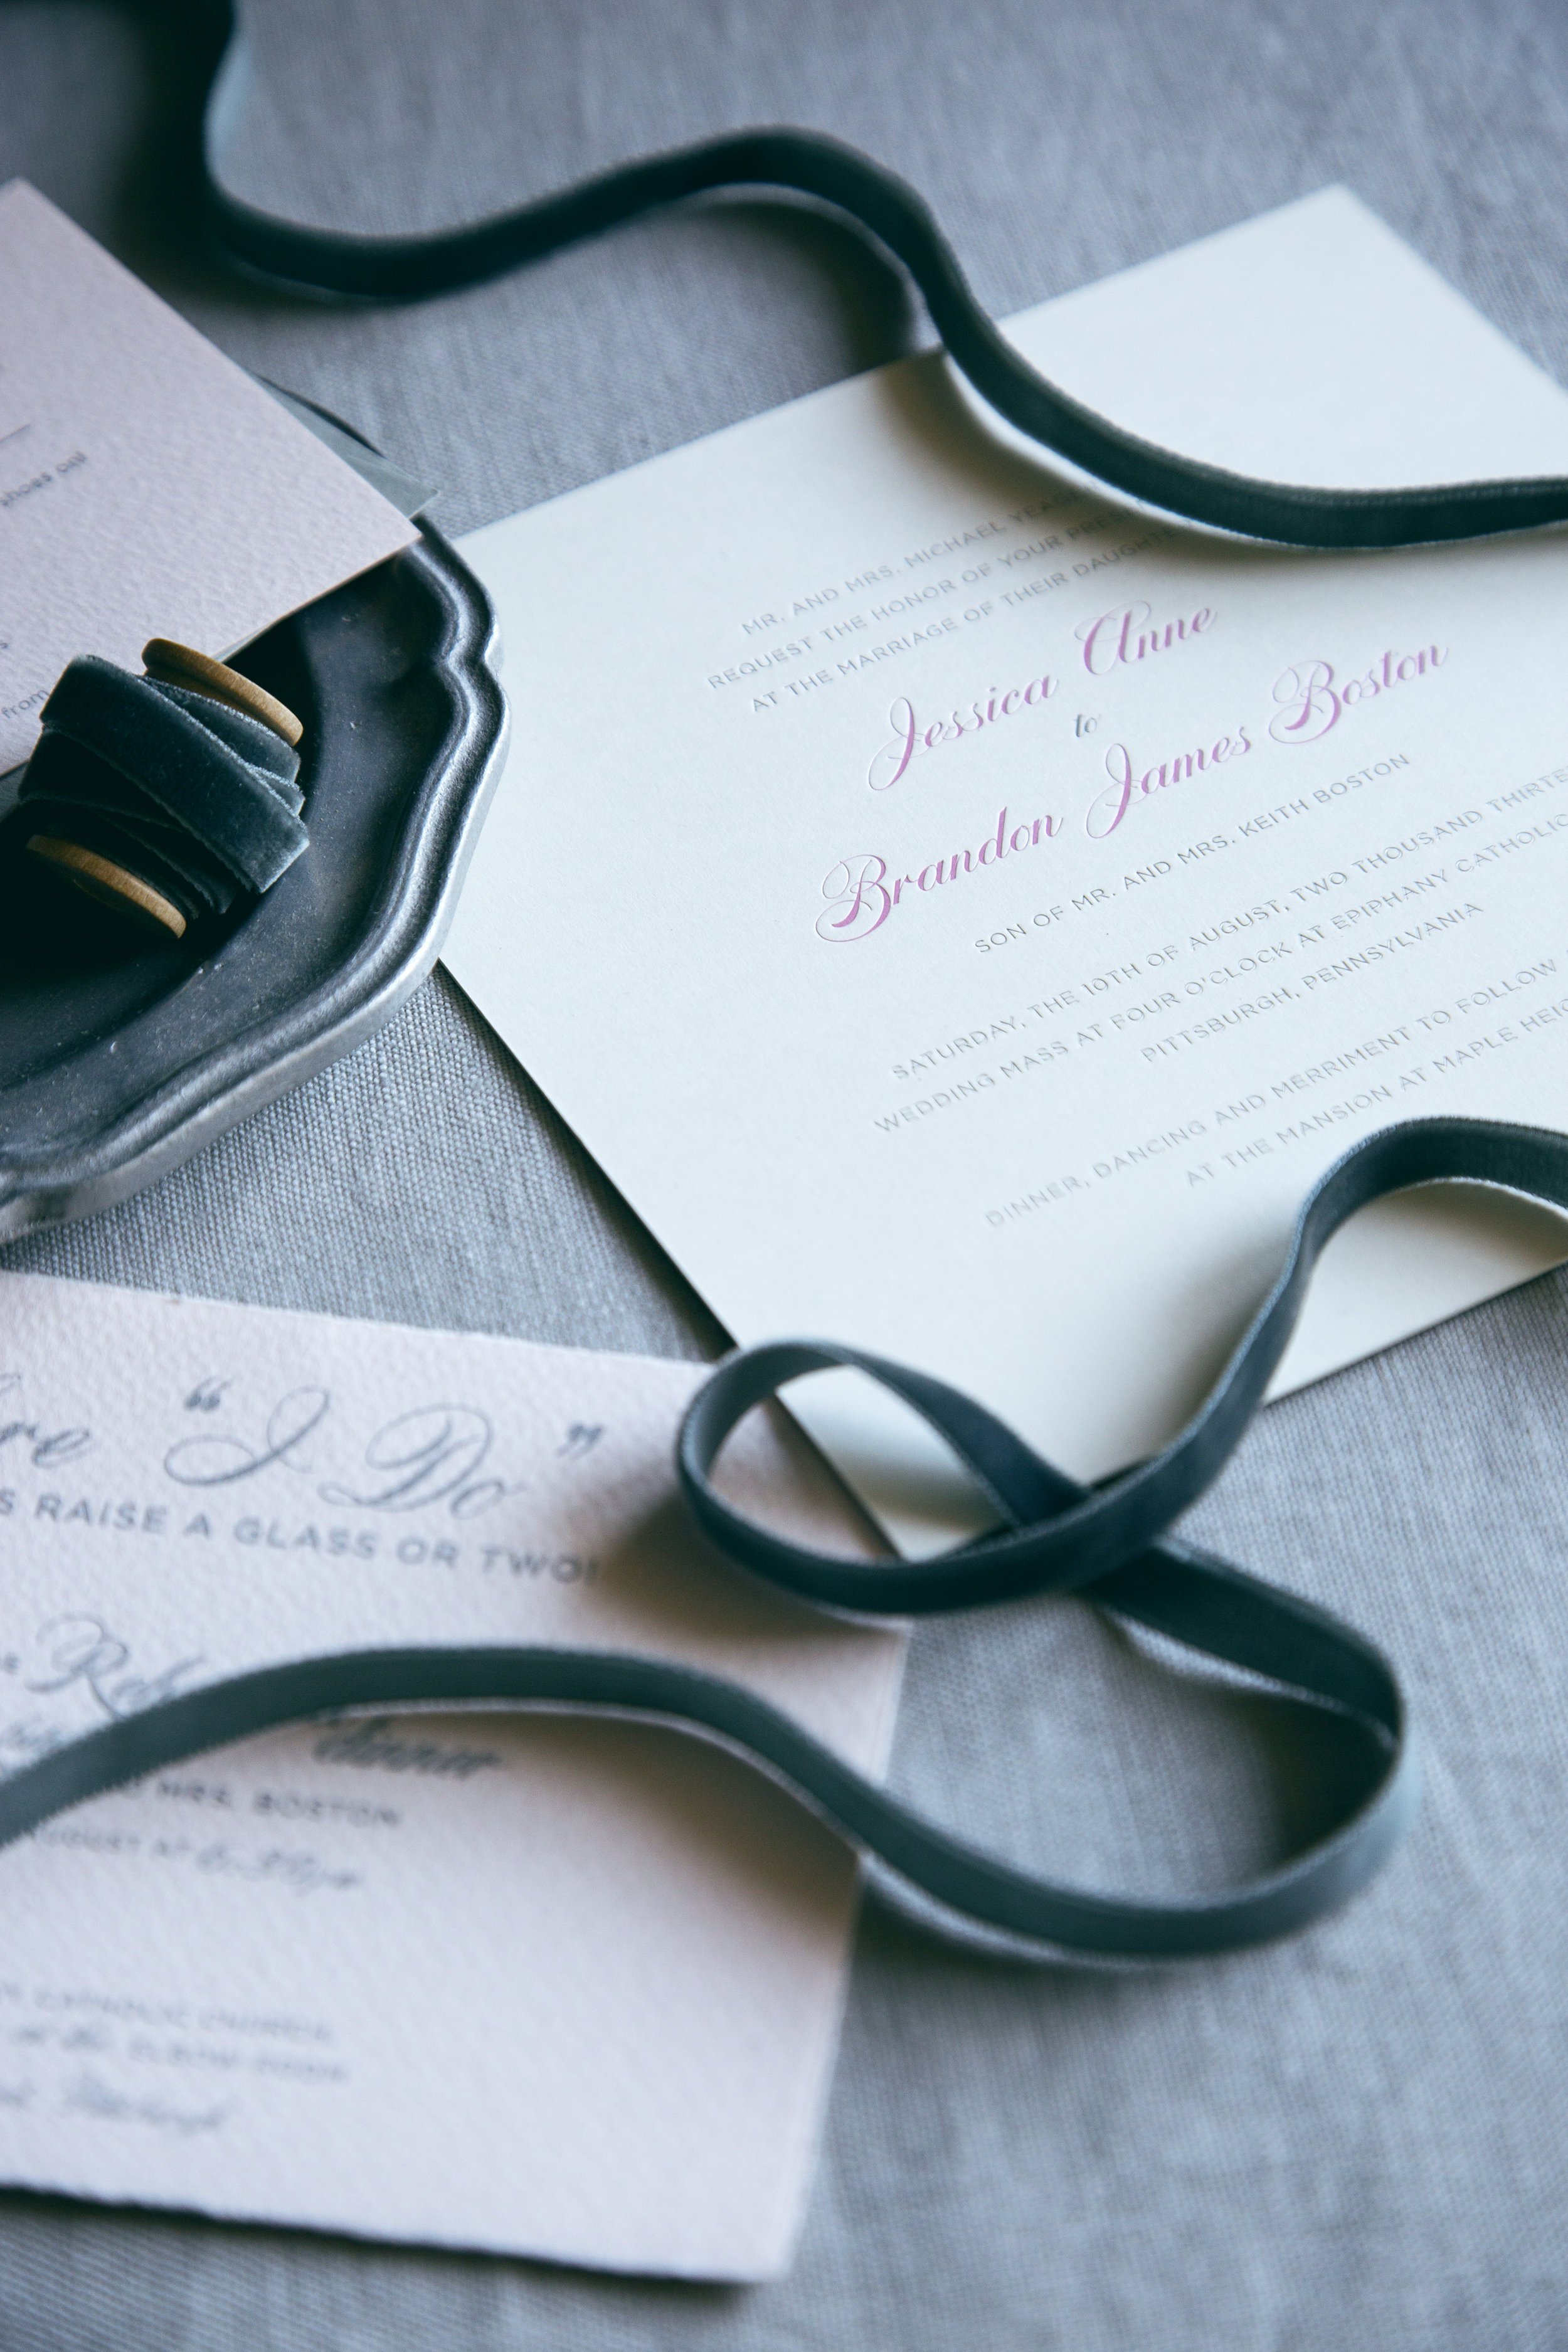 Pittsburgh letterpress printed wedding invitation with silver foil and calligraphy details   www.chavelli.com